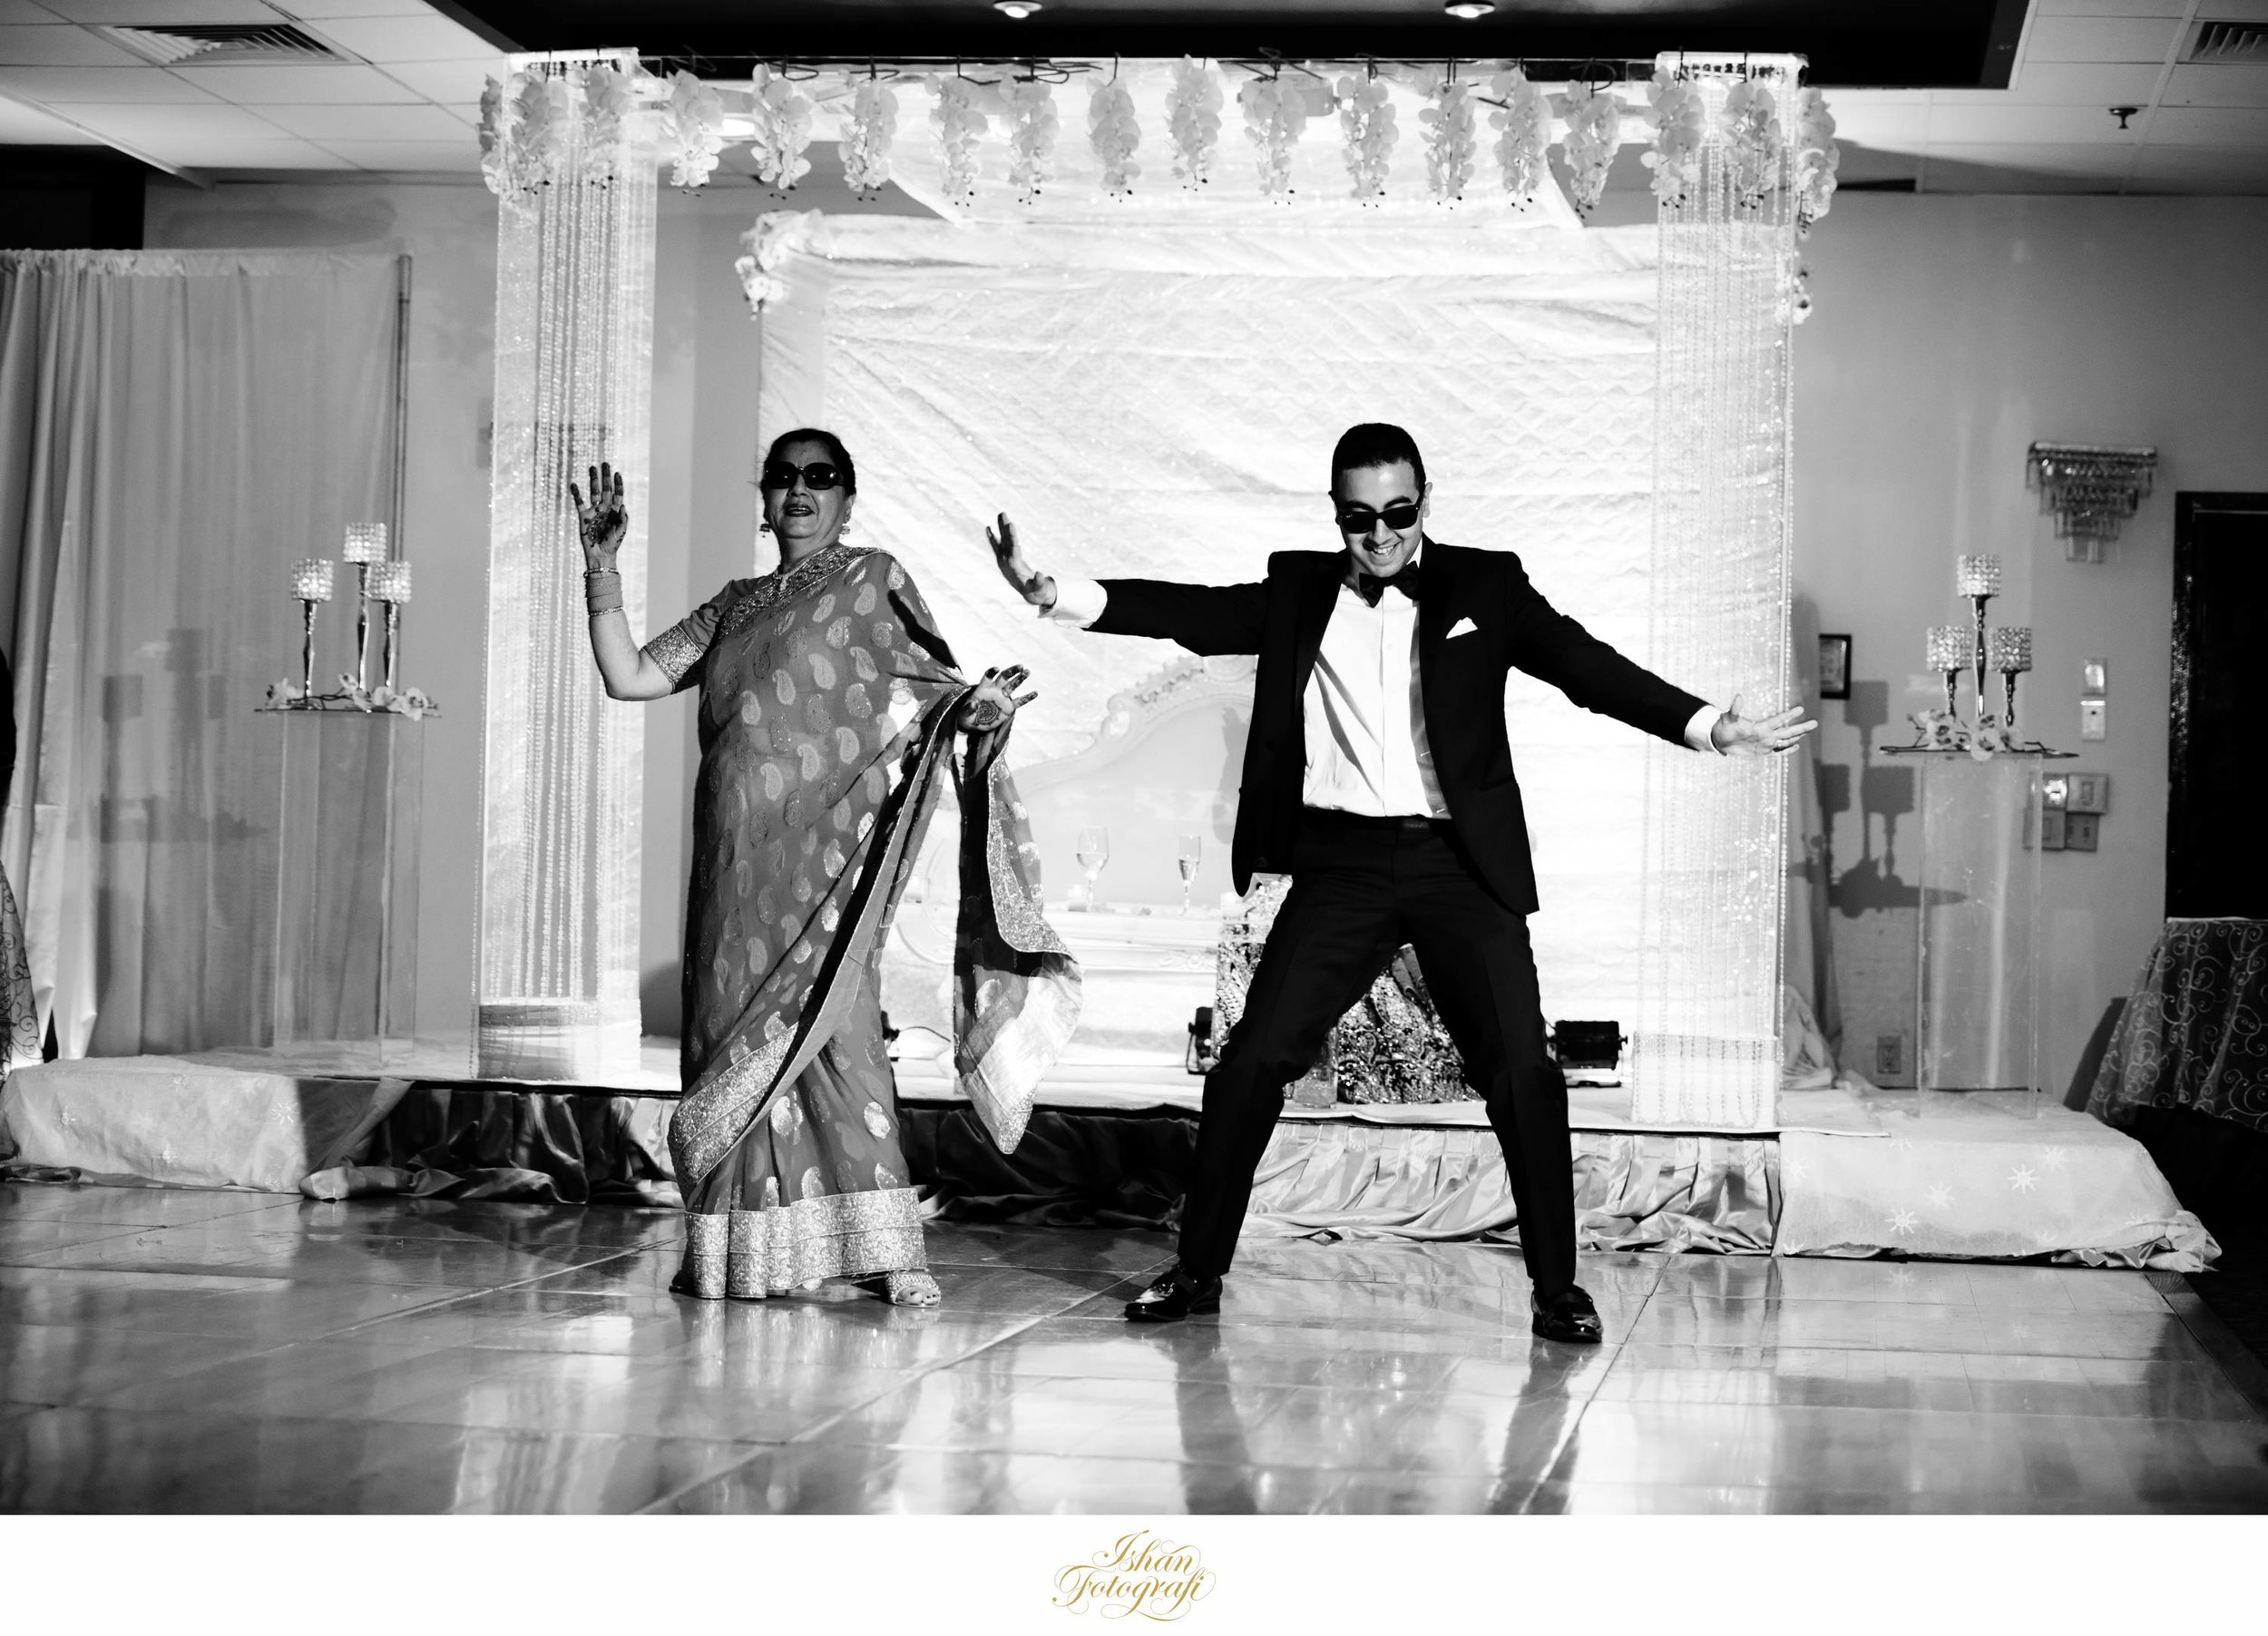 Son and Mother Indian wedding first dance.